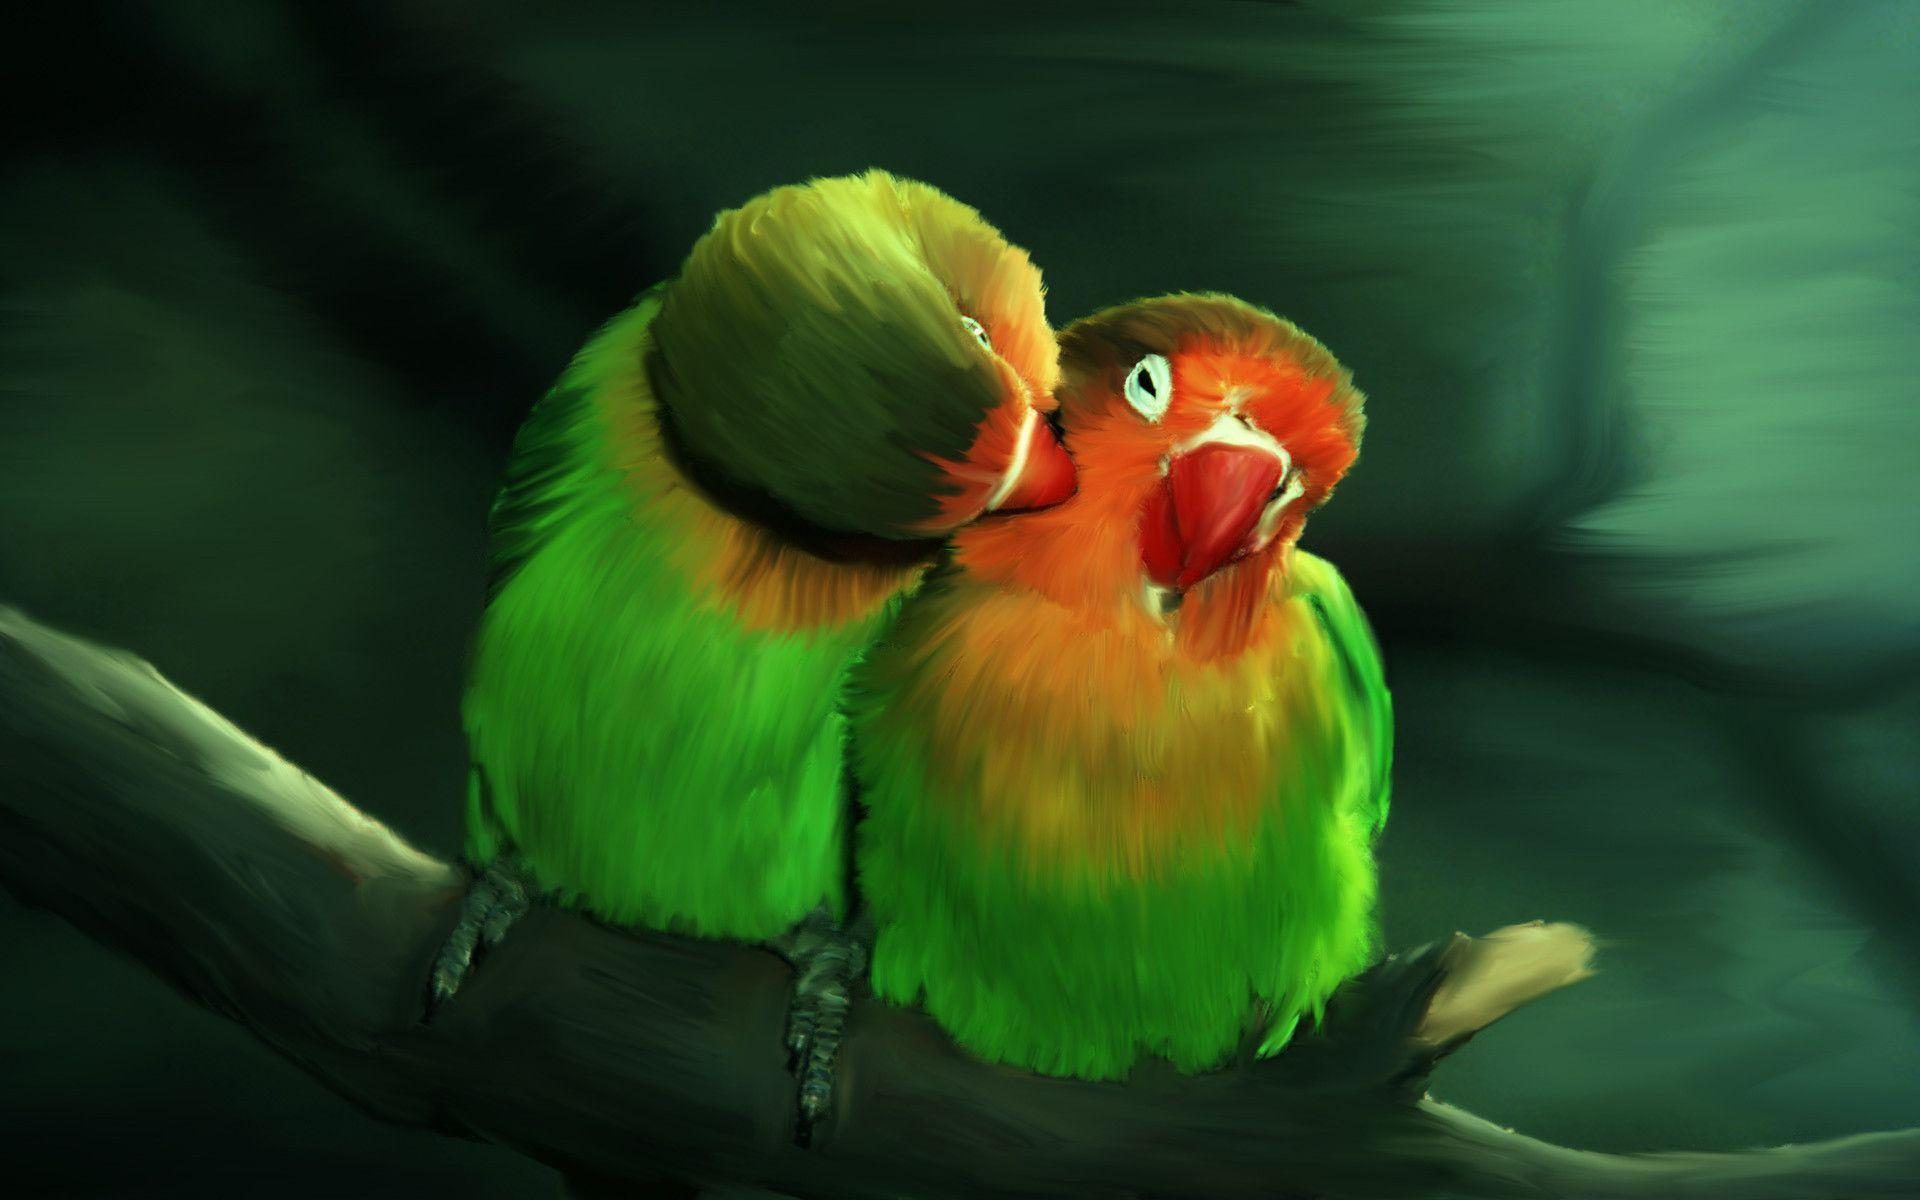 Love Birds Images For Wallpaper : Love Bird Wallpapers - Wallpaper cave